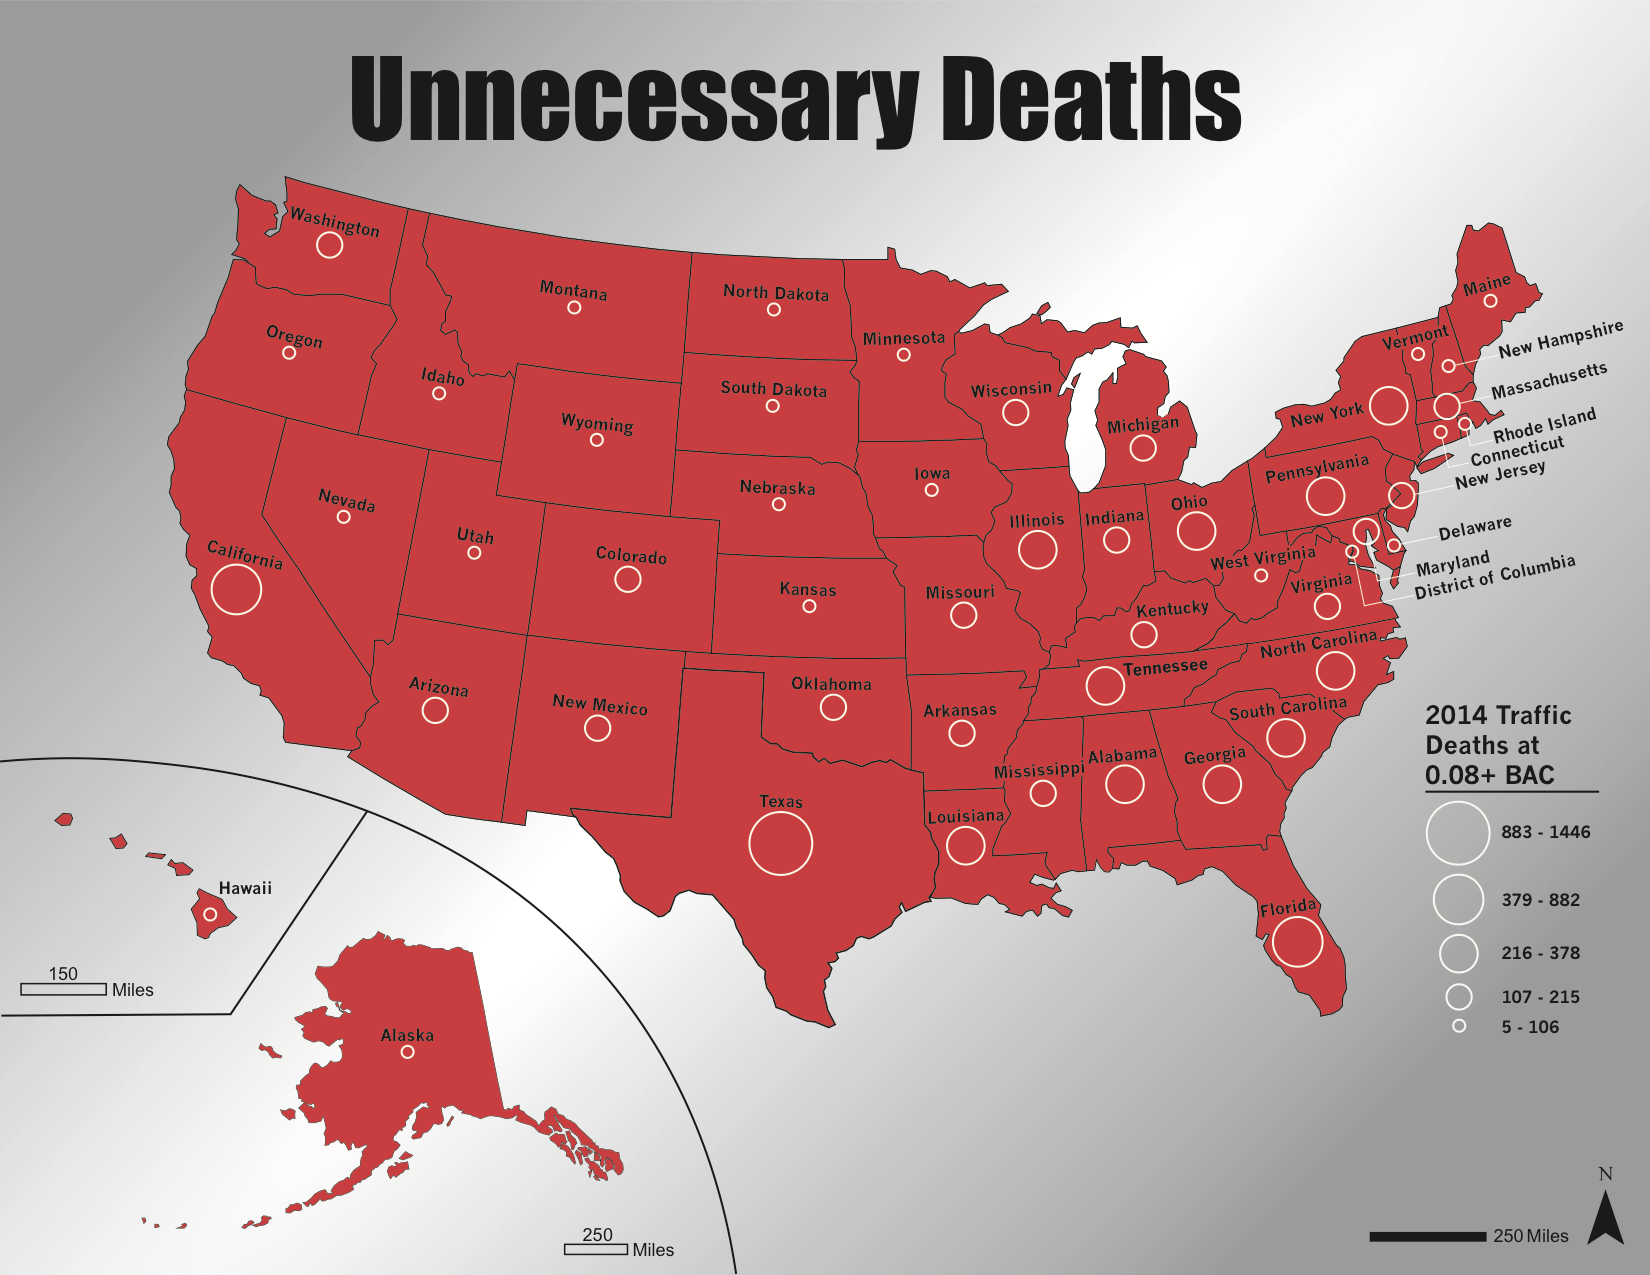 drunk driving deaths